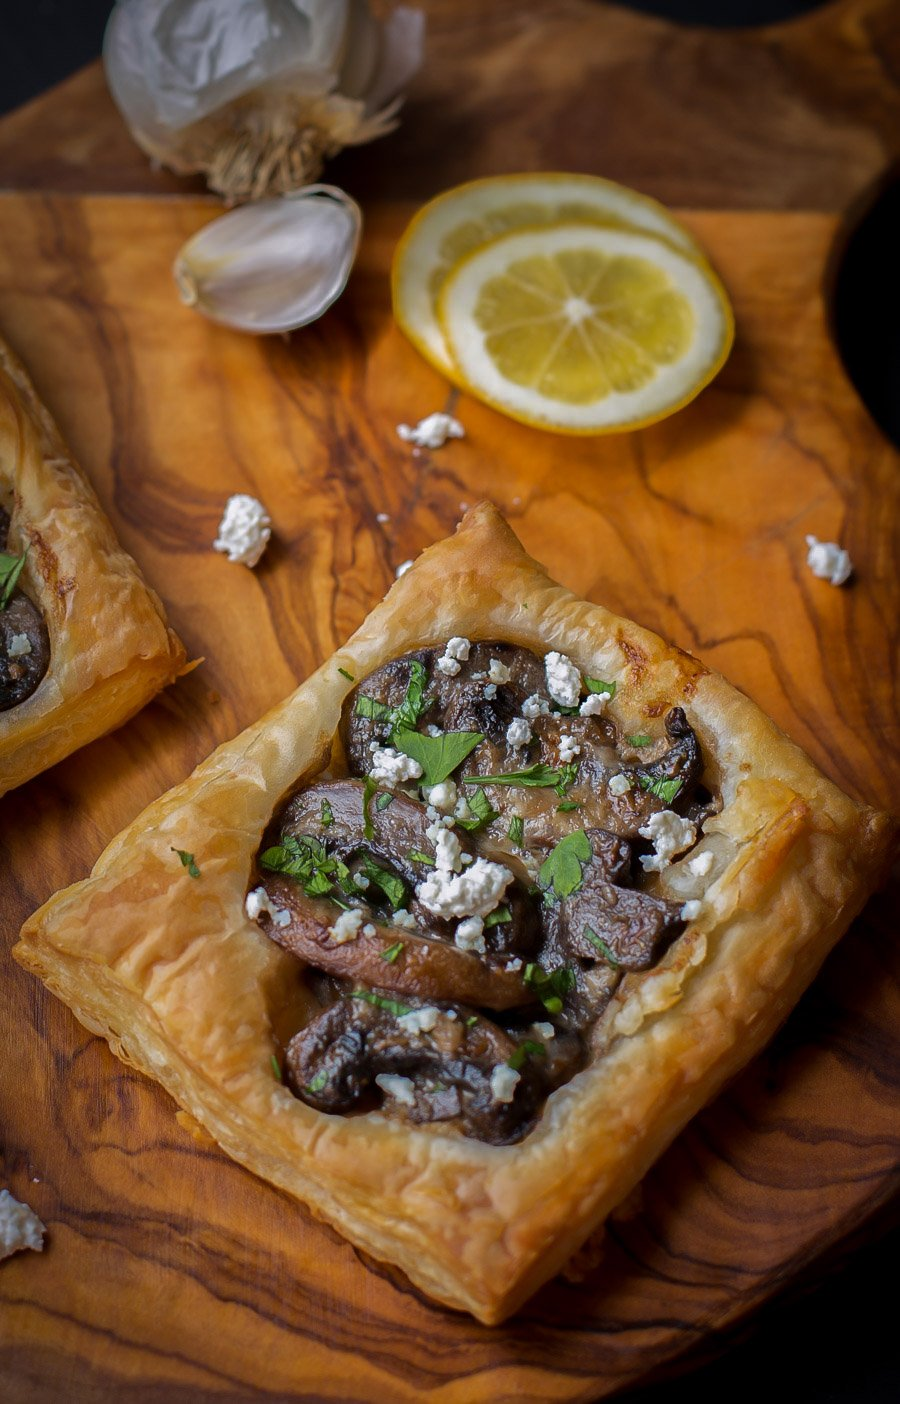 Goat cheese tart topped with goat cheese and fresh greens on a cutting board with goat cheese, lemons, and garlic.